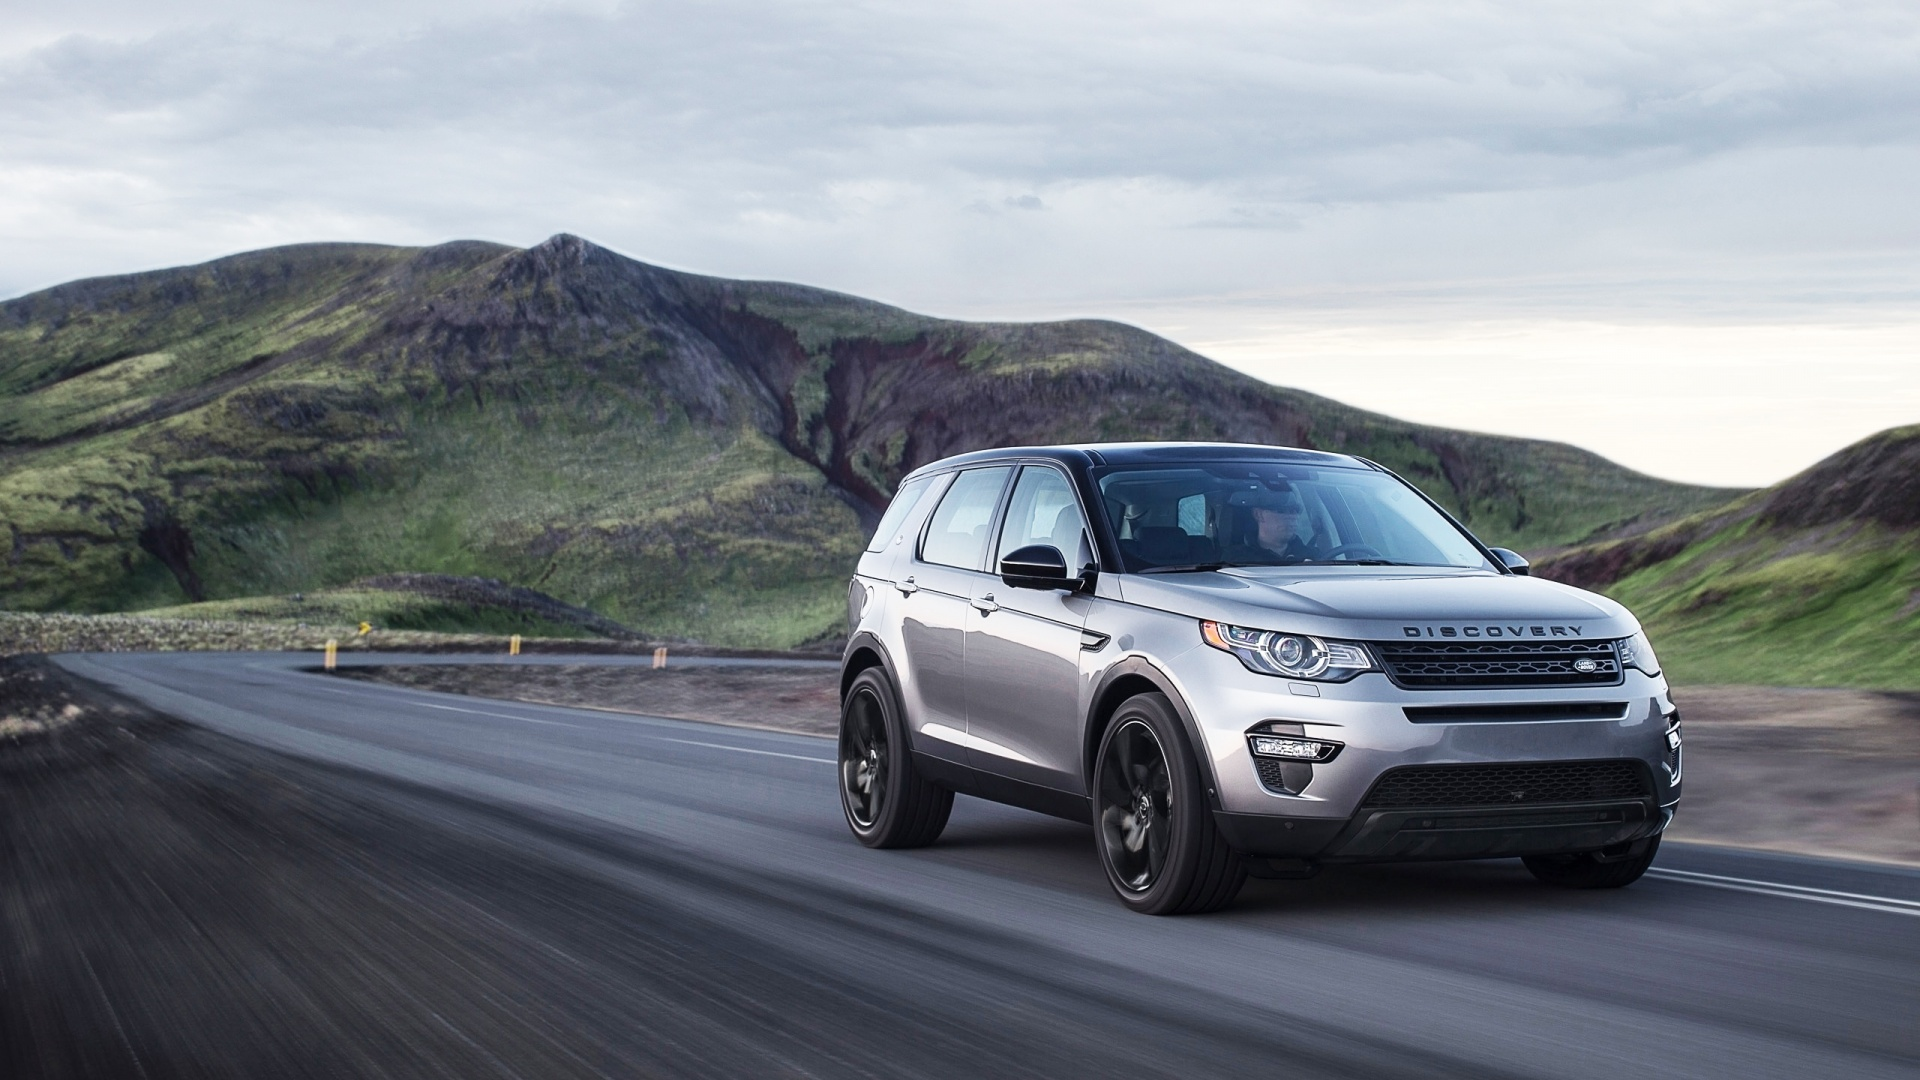 2015 Land Rover Discovery Sport Wallpaper HD Car Wallpapers 1920x1080